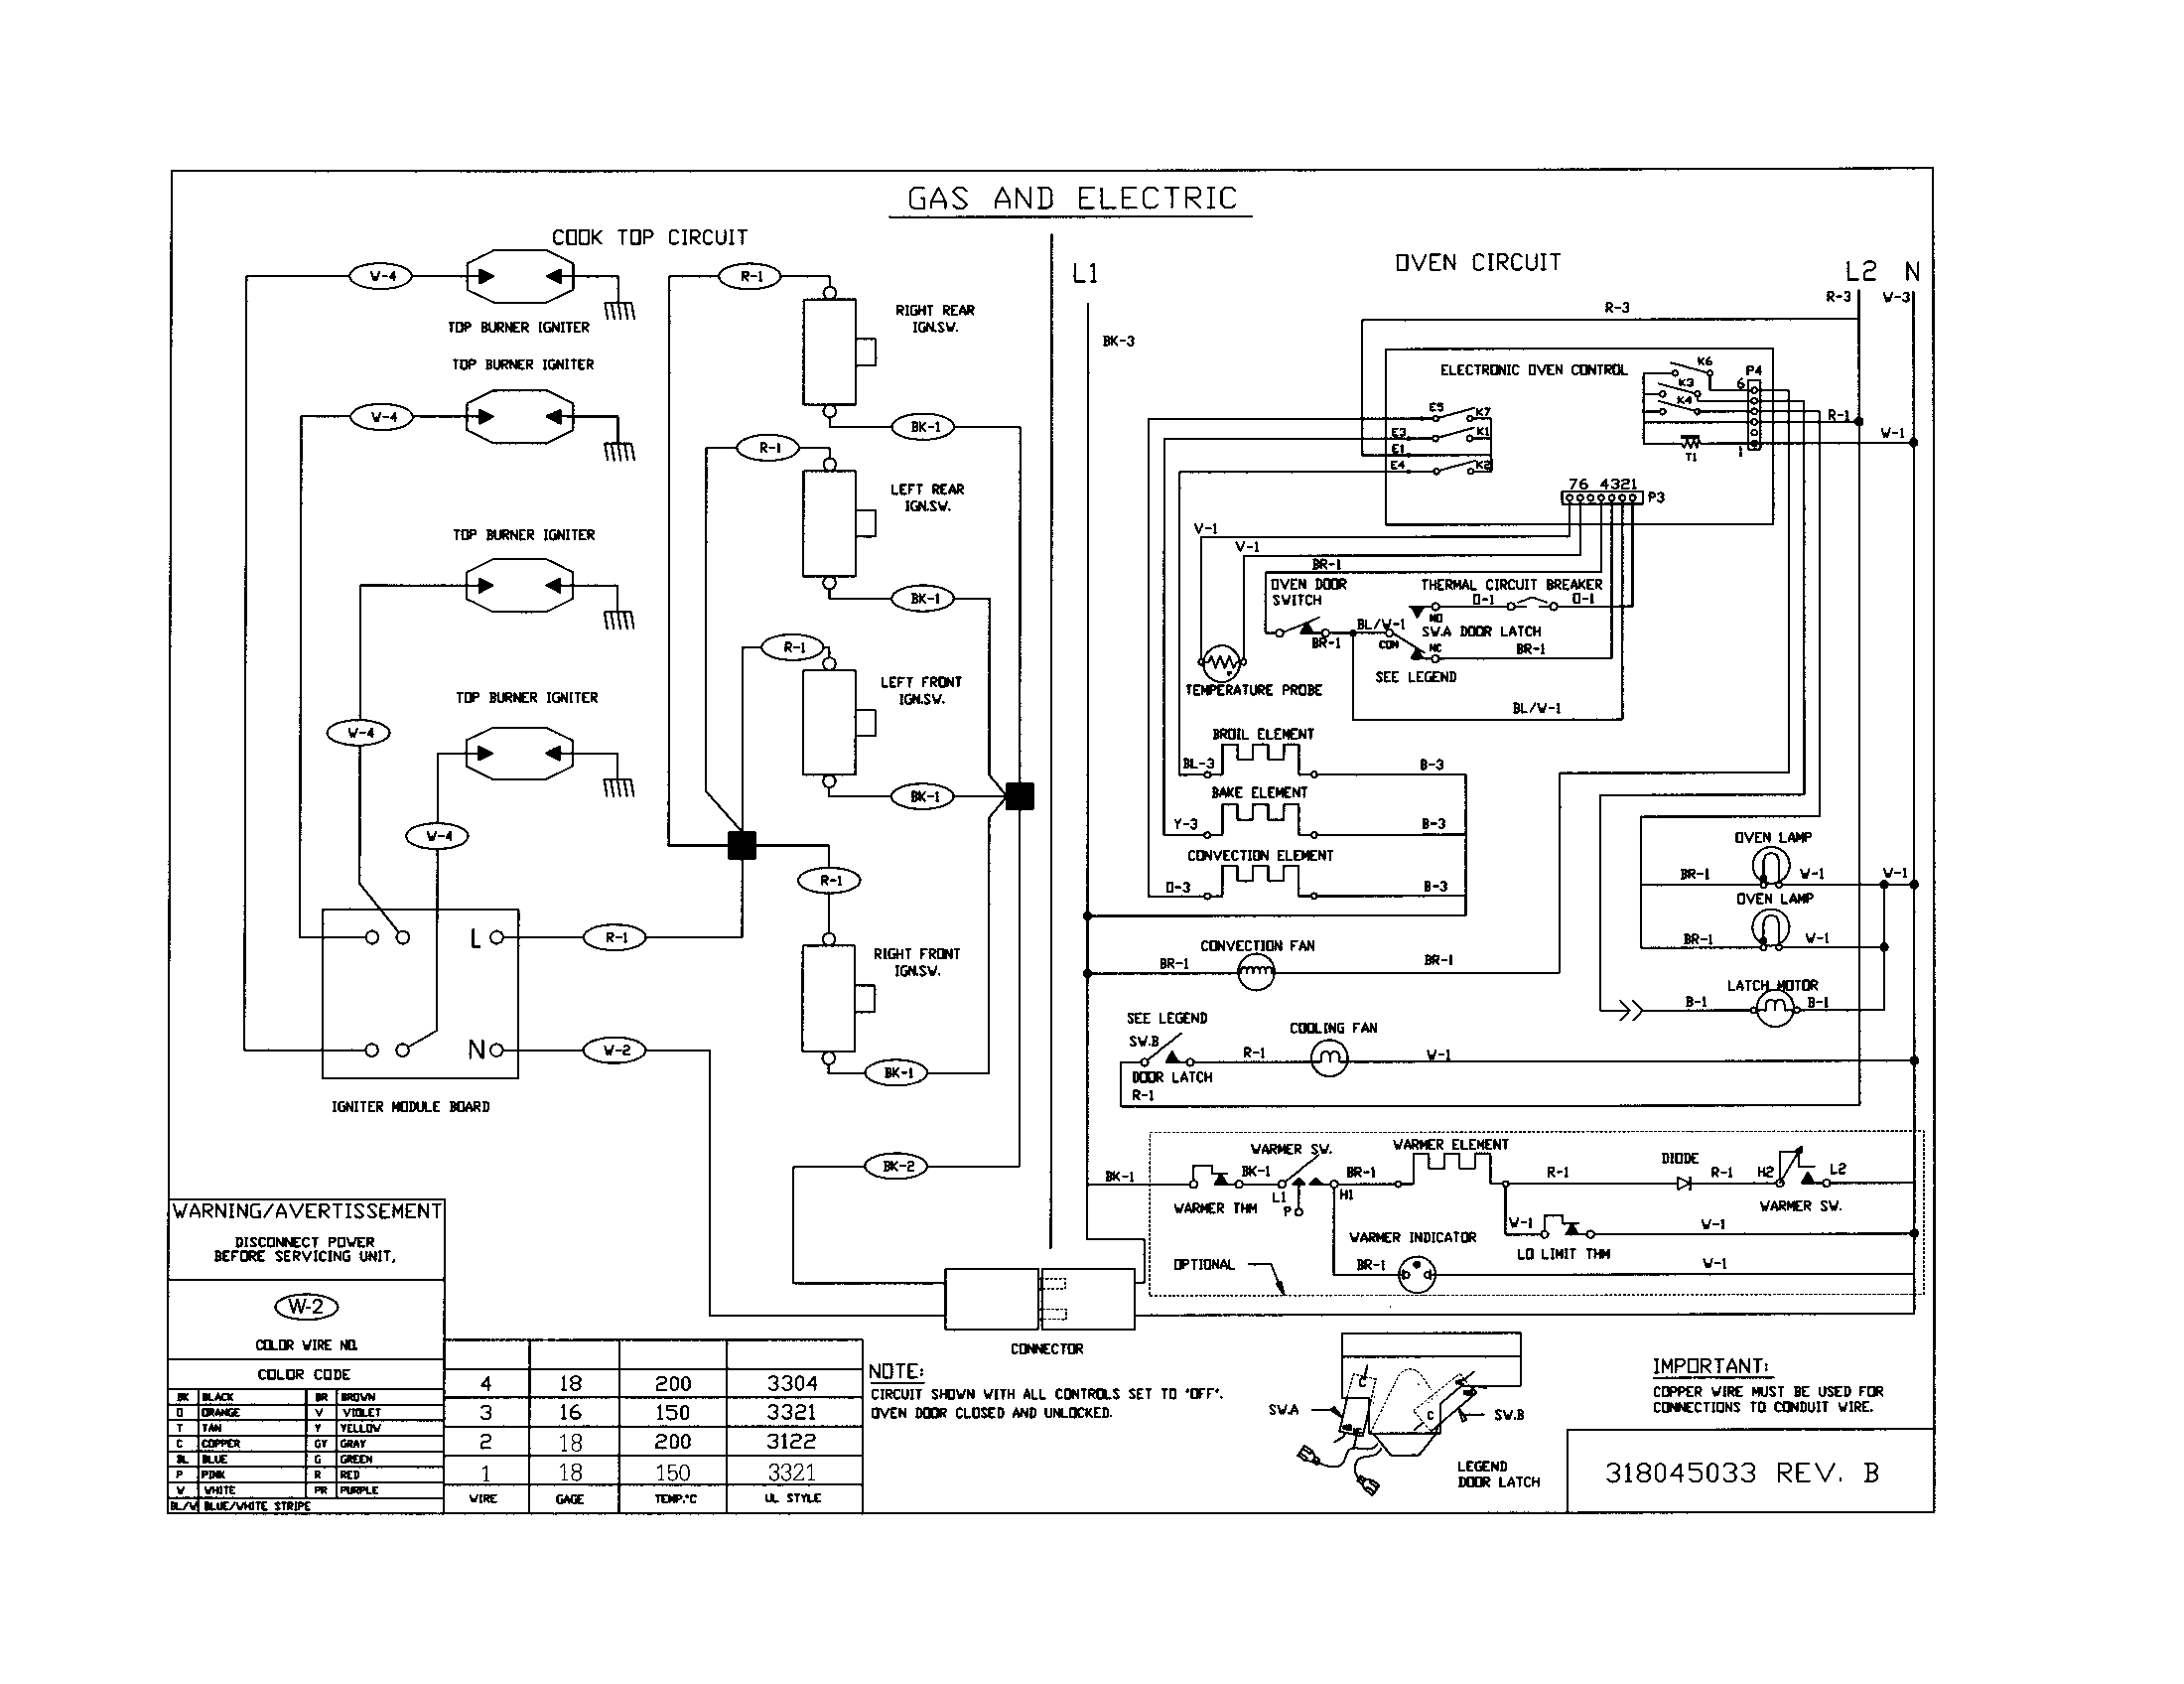 Range wiring diagram on samsung gas stove replacement parts 8 15 whirlpool gas dryer wiring diagram samsung oven wiring diagram best part of wiring diagram rh b12 aluminiumsolutions co